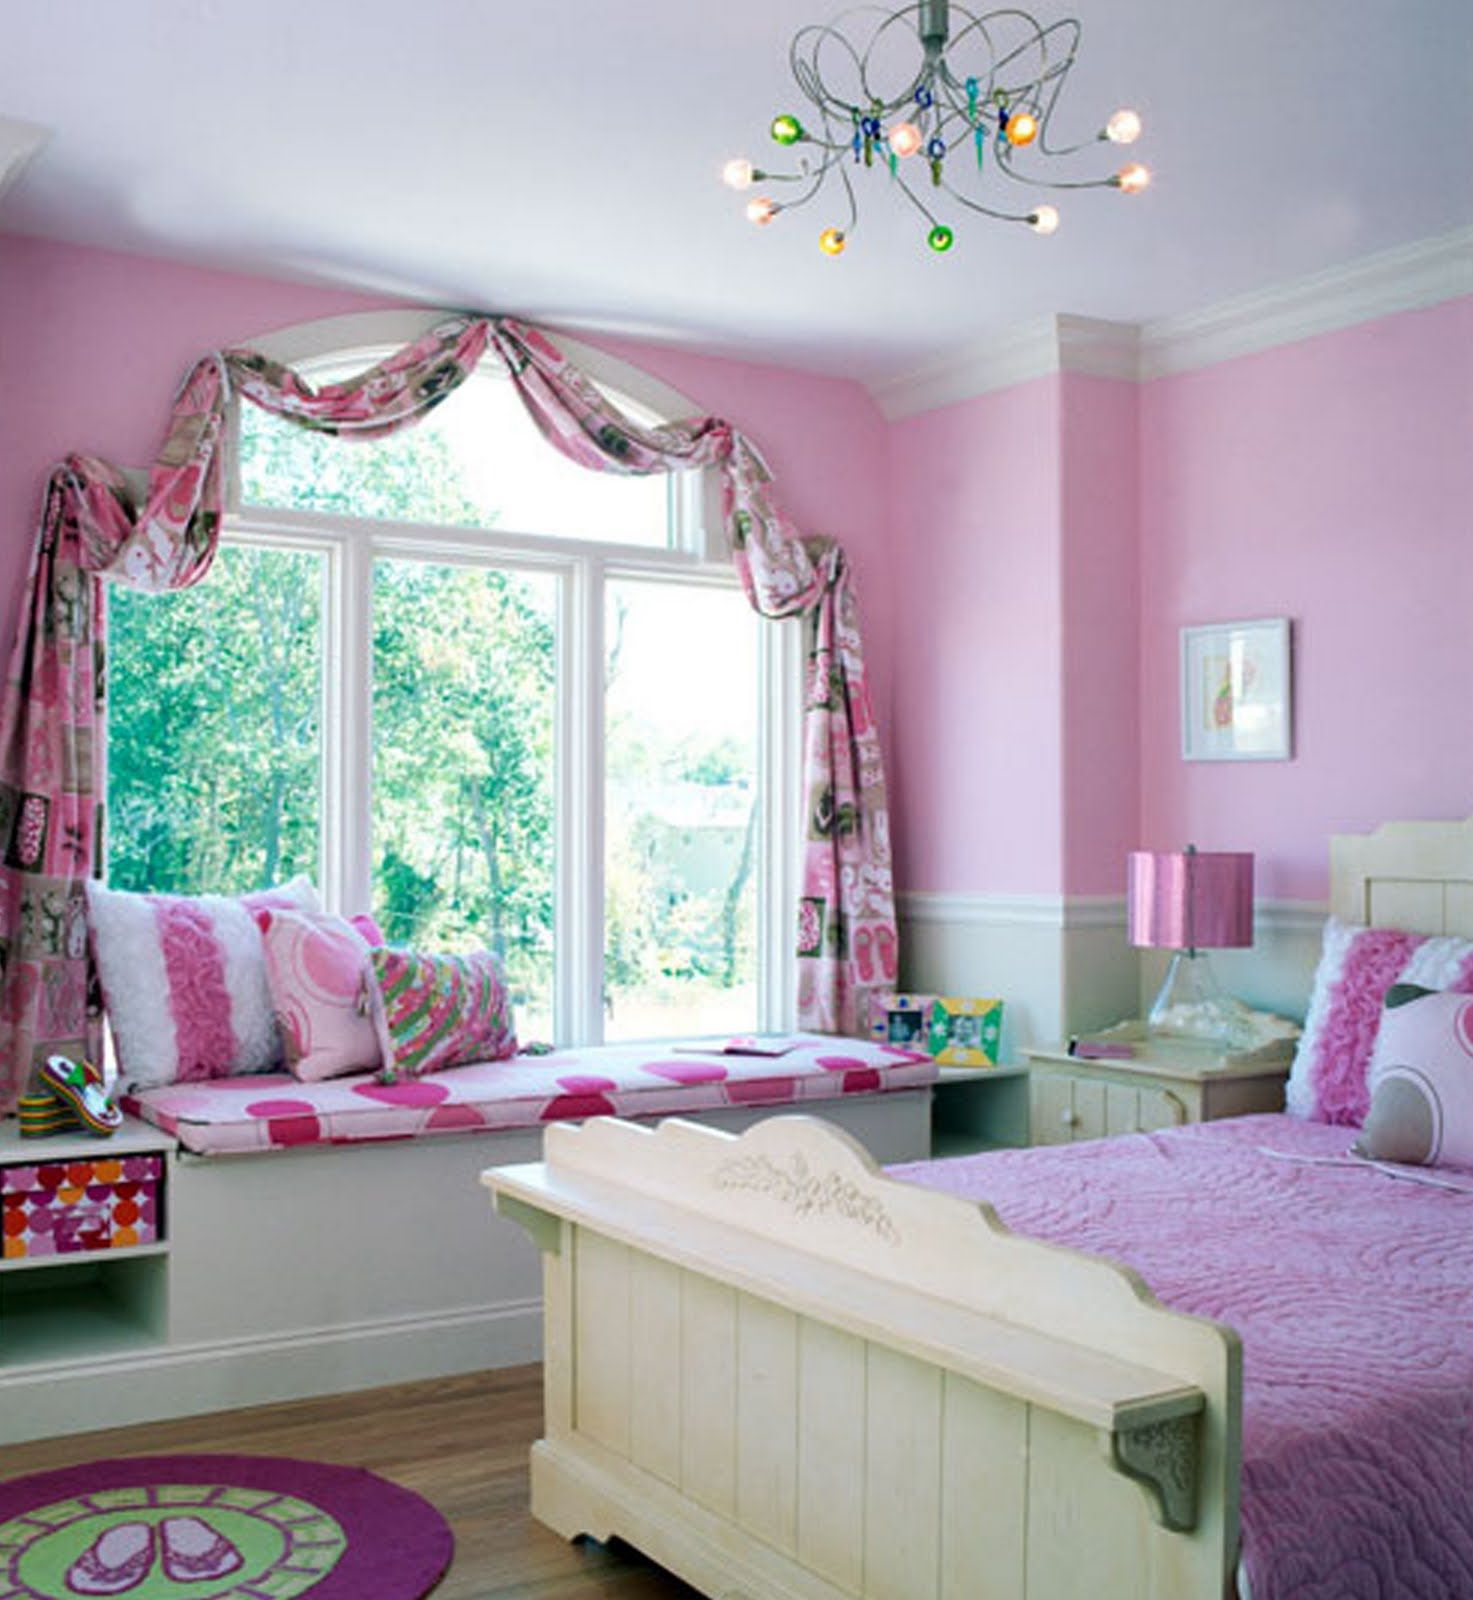 Bedroom ideas for girls purple - Excellent Girls Room Design Ideas With Creative Purple Floral